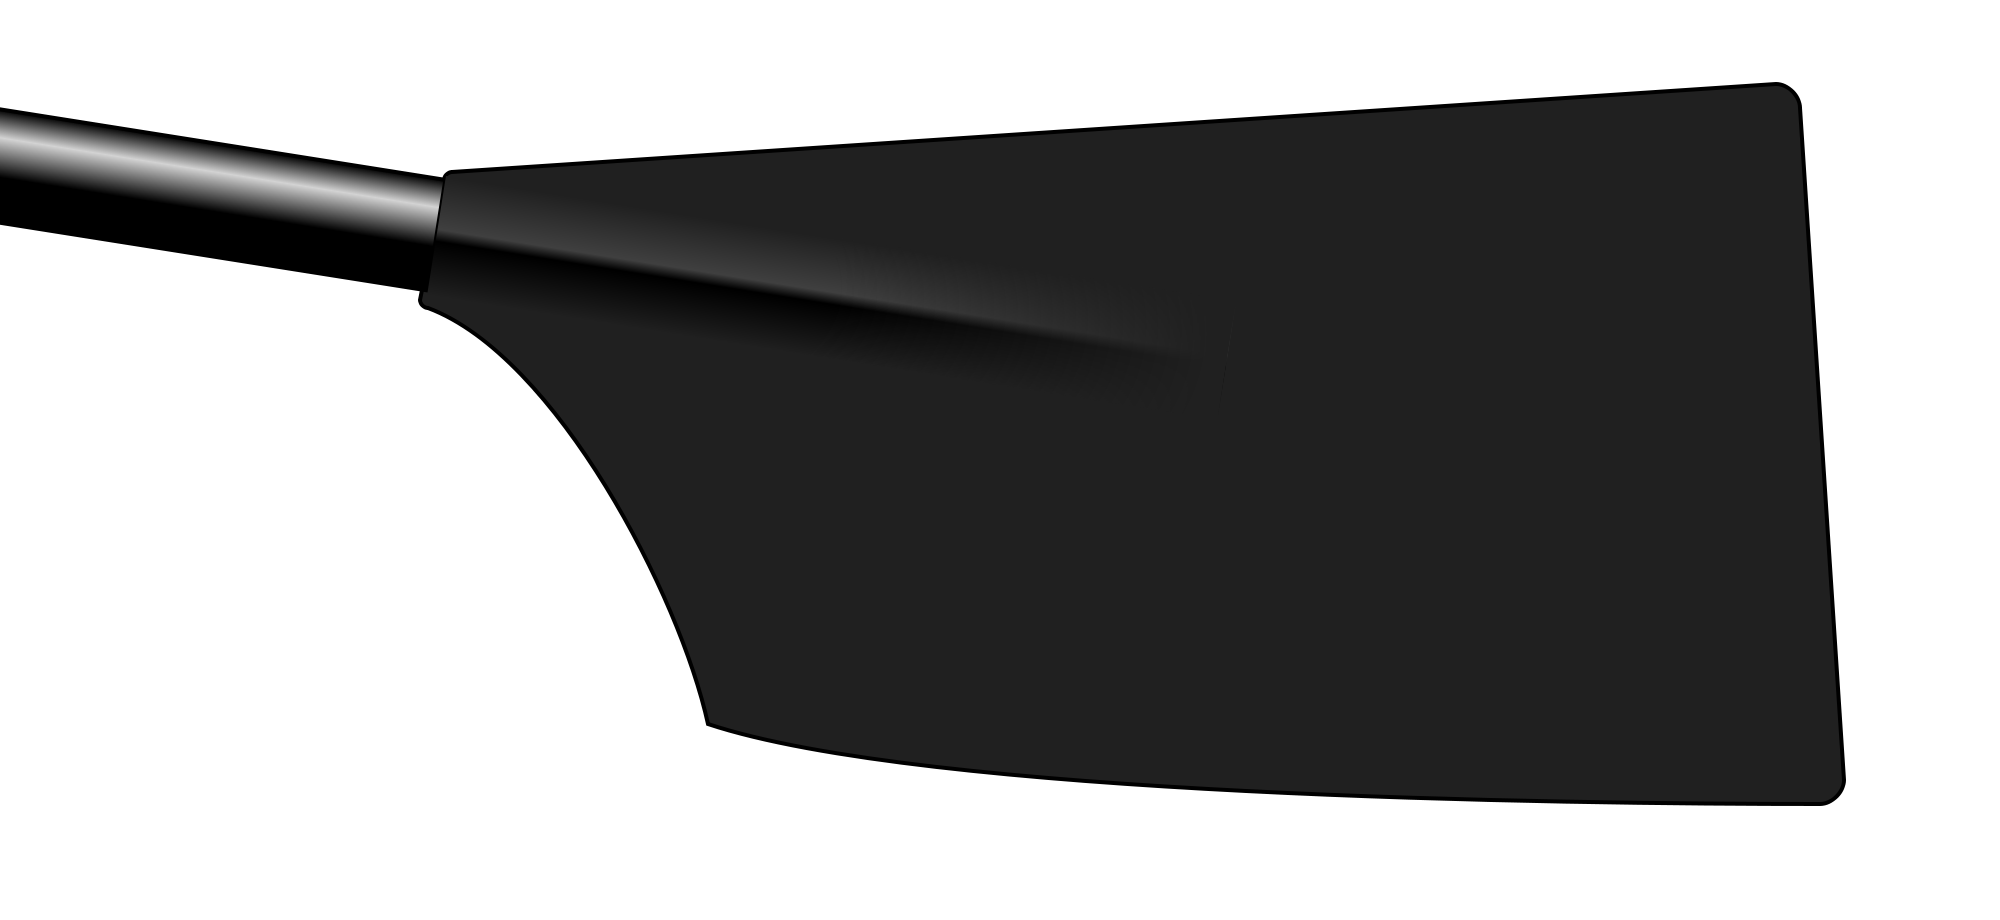 banner black and white Boat svg rowing. File blade black wikimedia